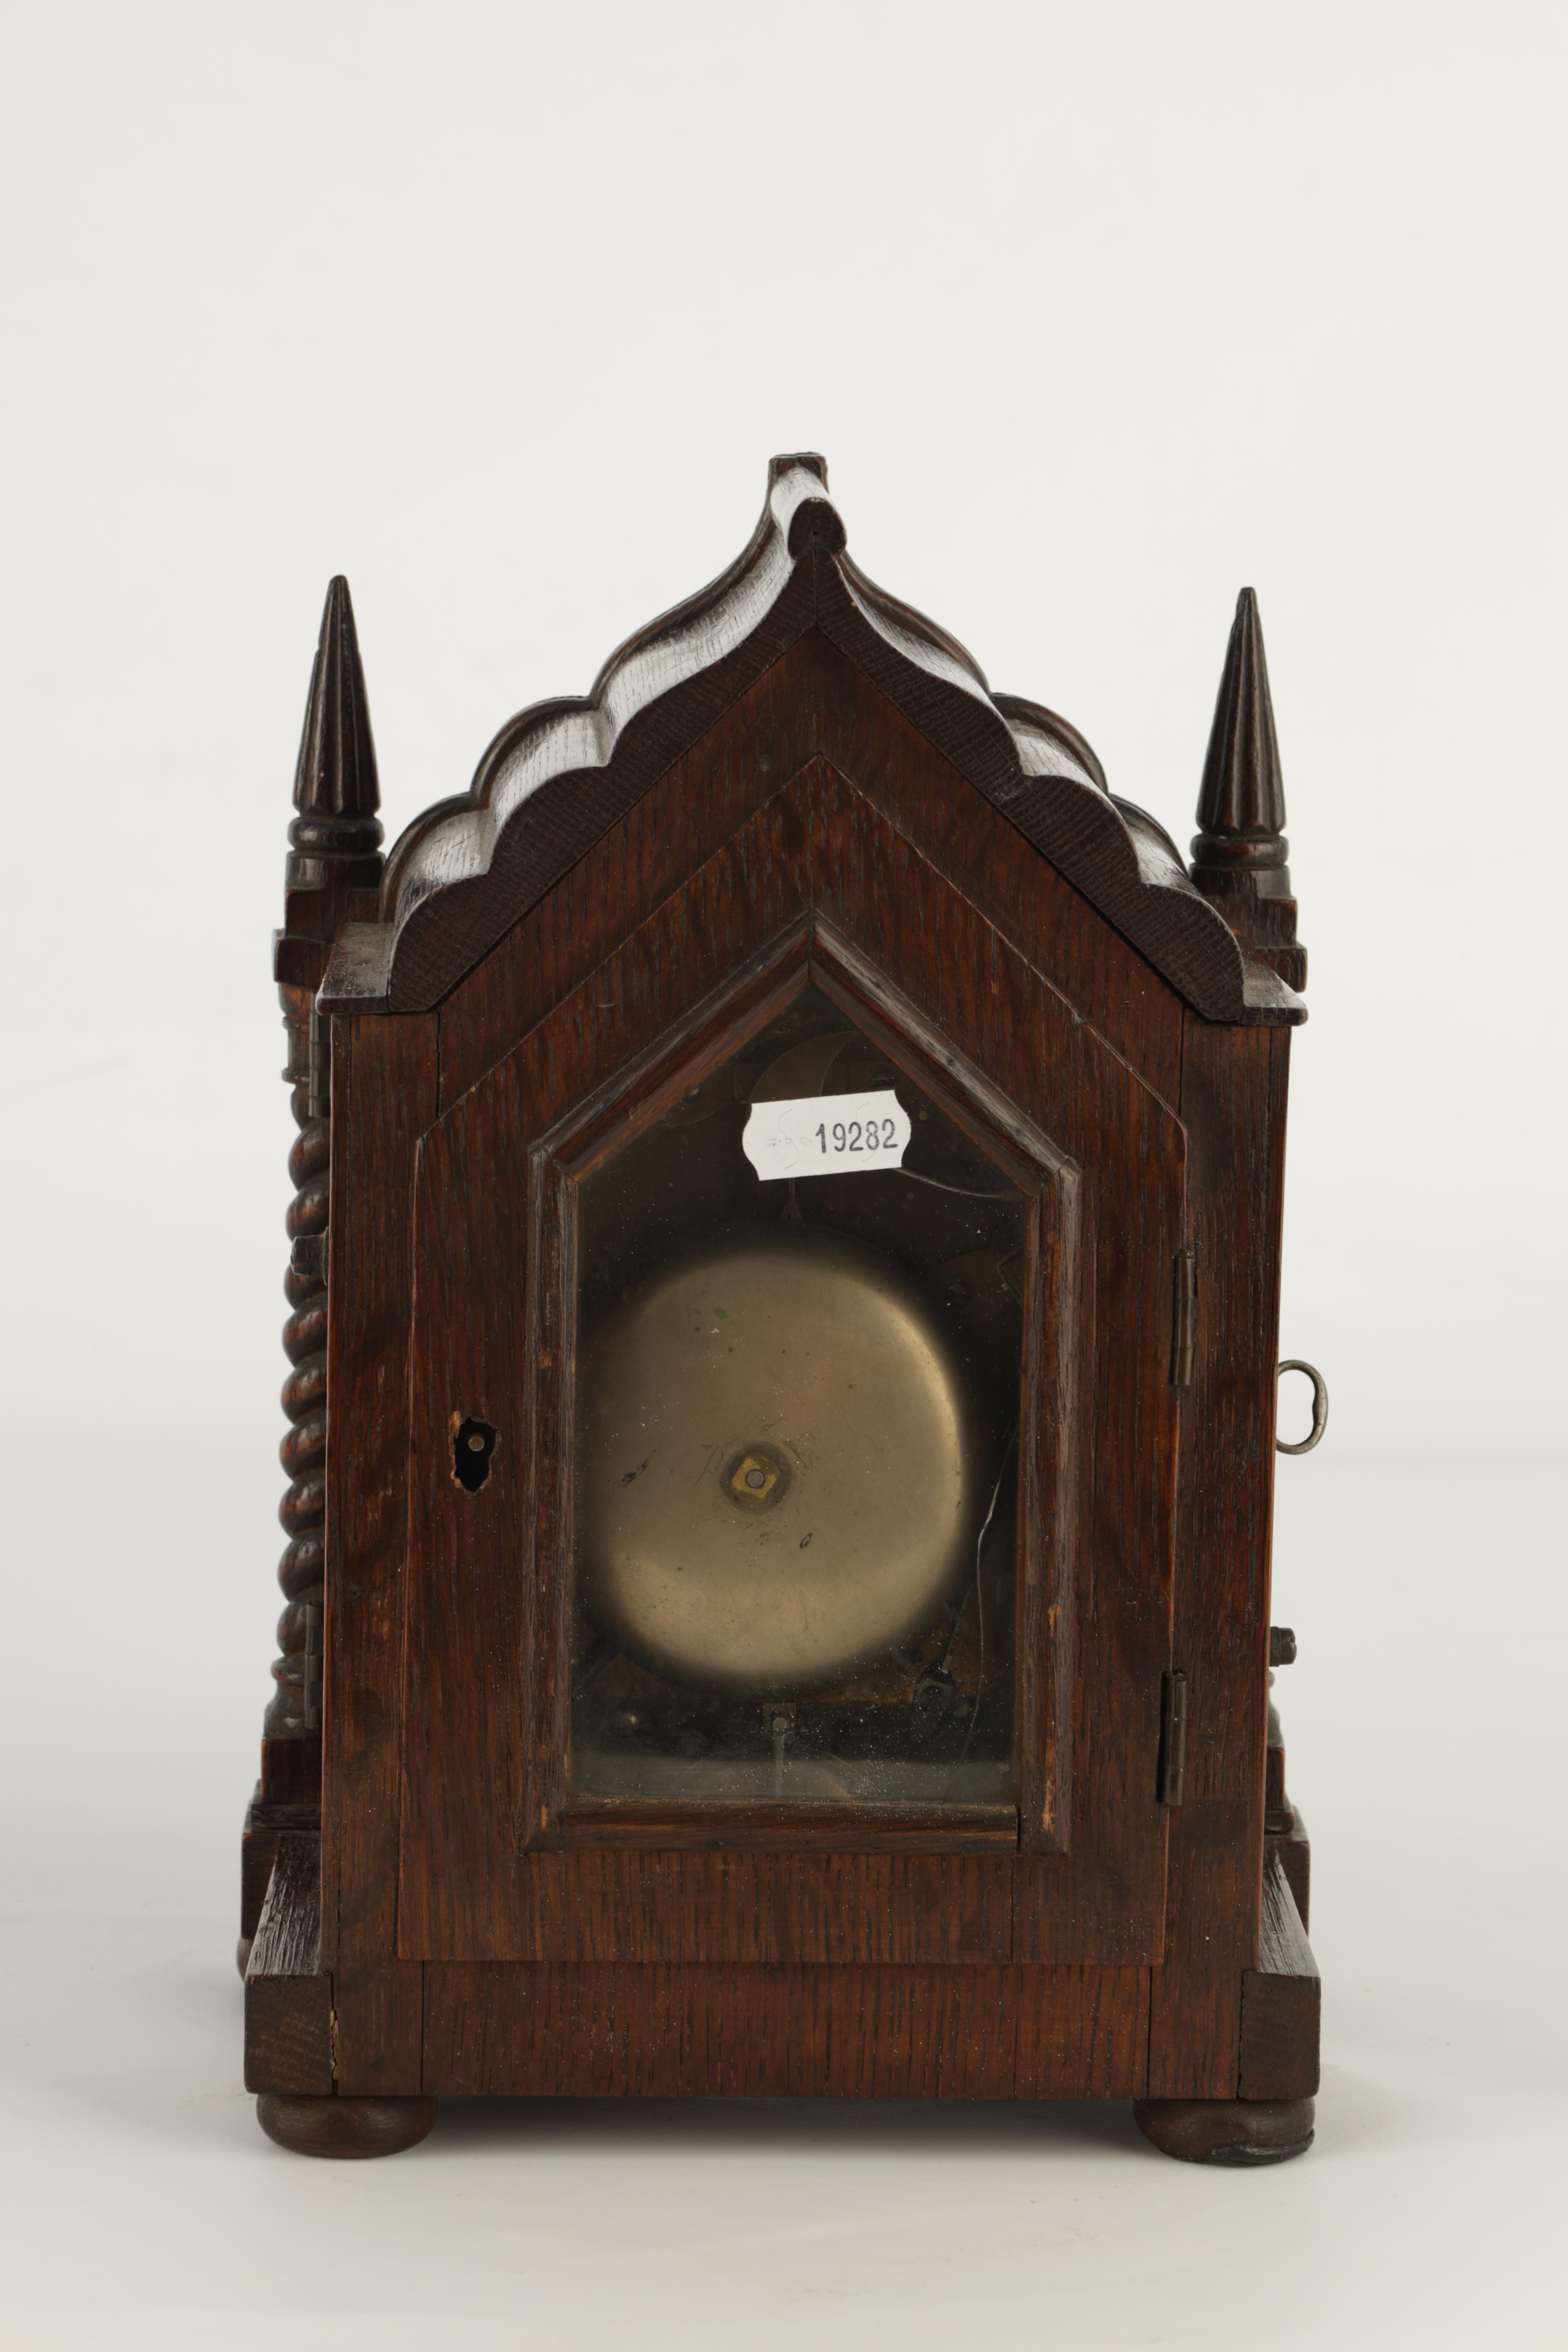 A SMALL MID 19TH CENTURY OAK CASED DOUBLE FUSEE MANTEL CLOCK the gothic style case with twisted - Image 4 of 7